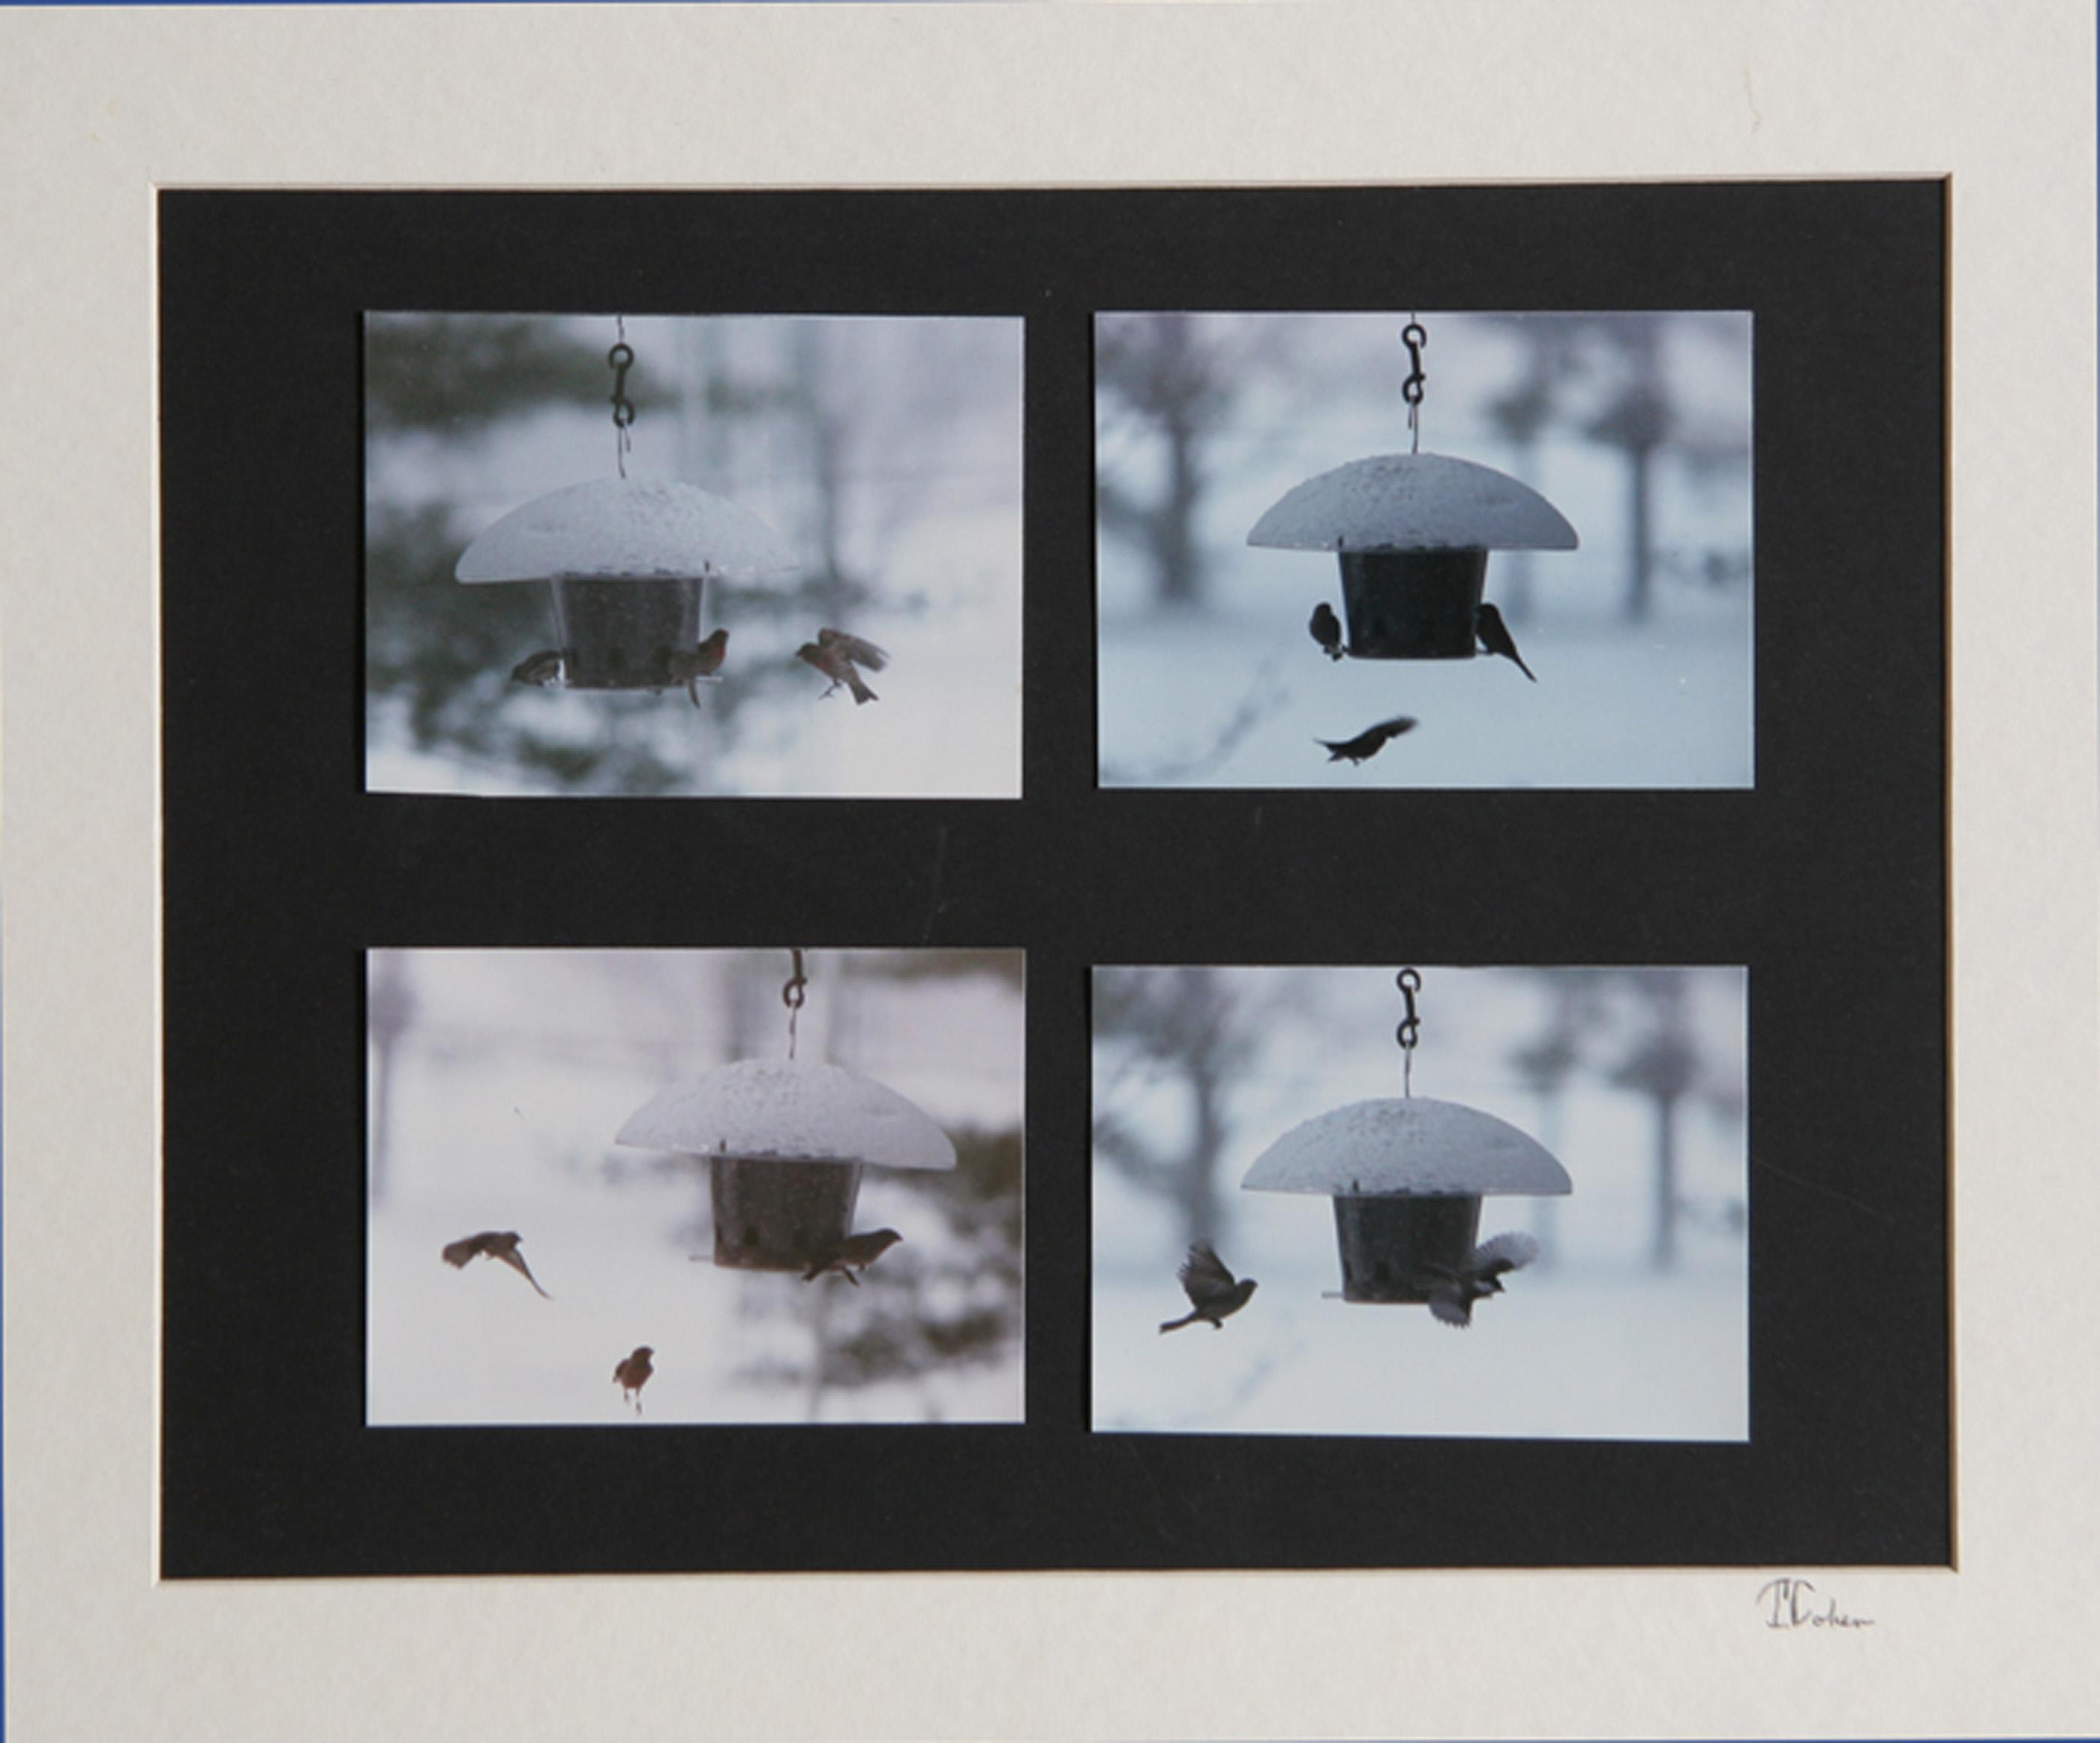 Theodore Cohen, Winter Birdhouse Study, Photograph